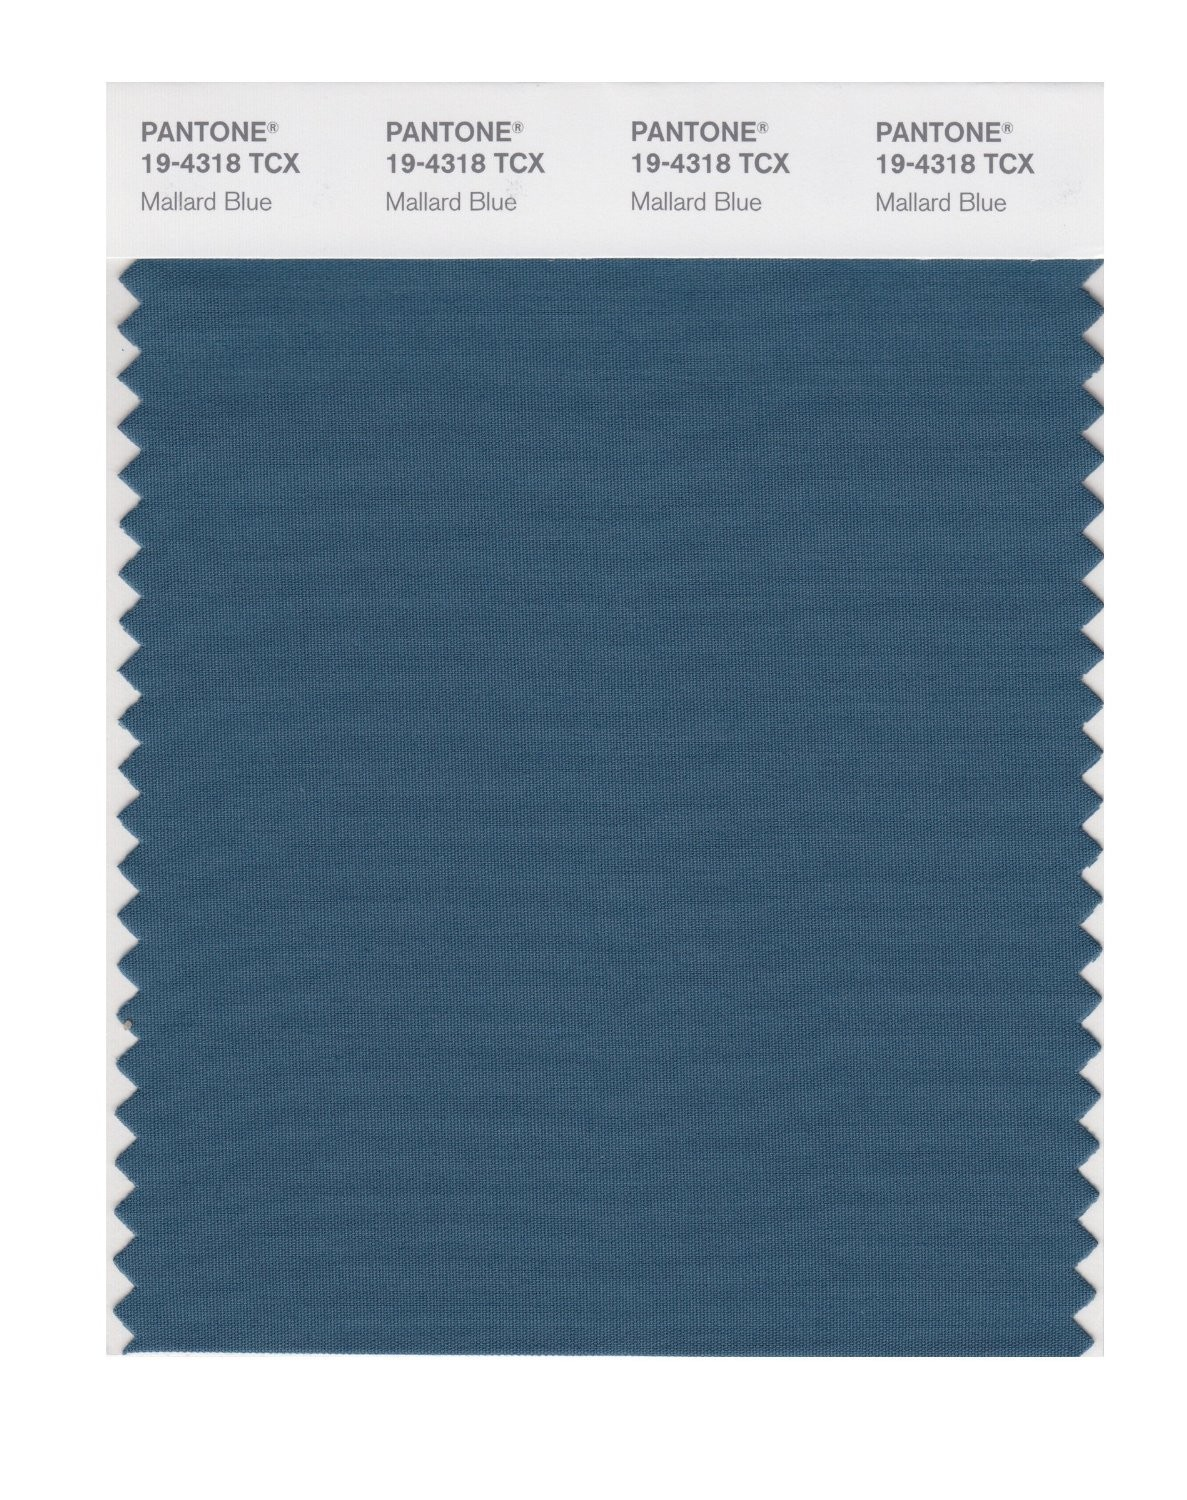 Pantone 19-4318 TCX Swatch Card Mallard Blue